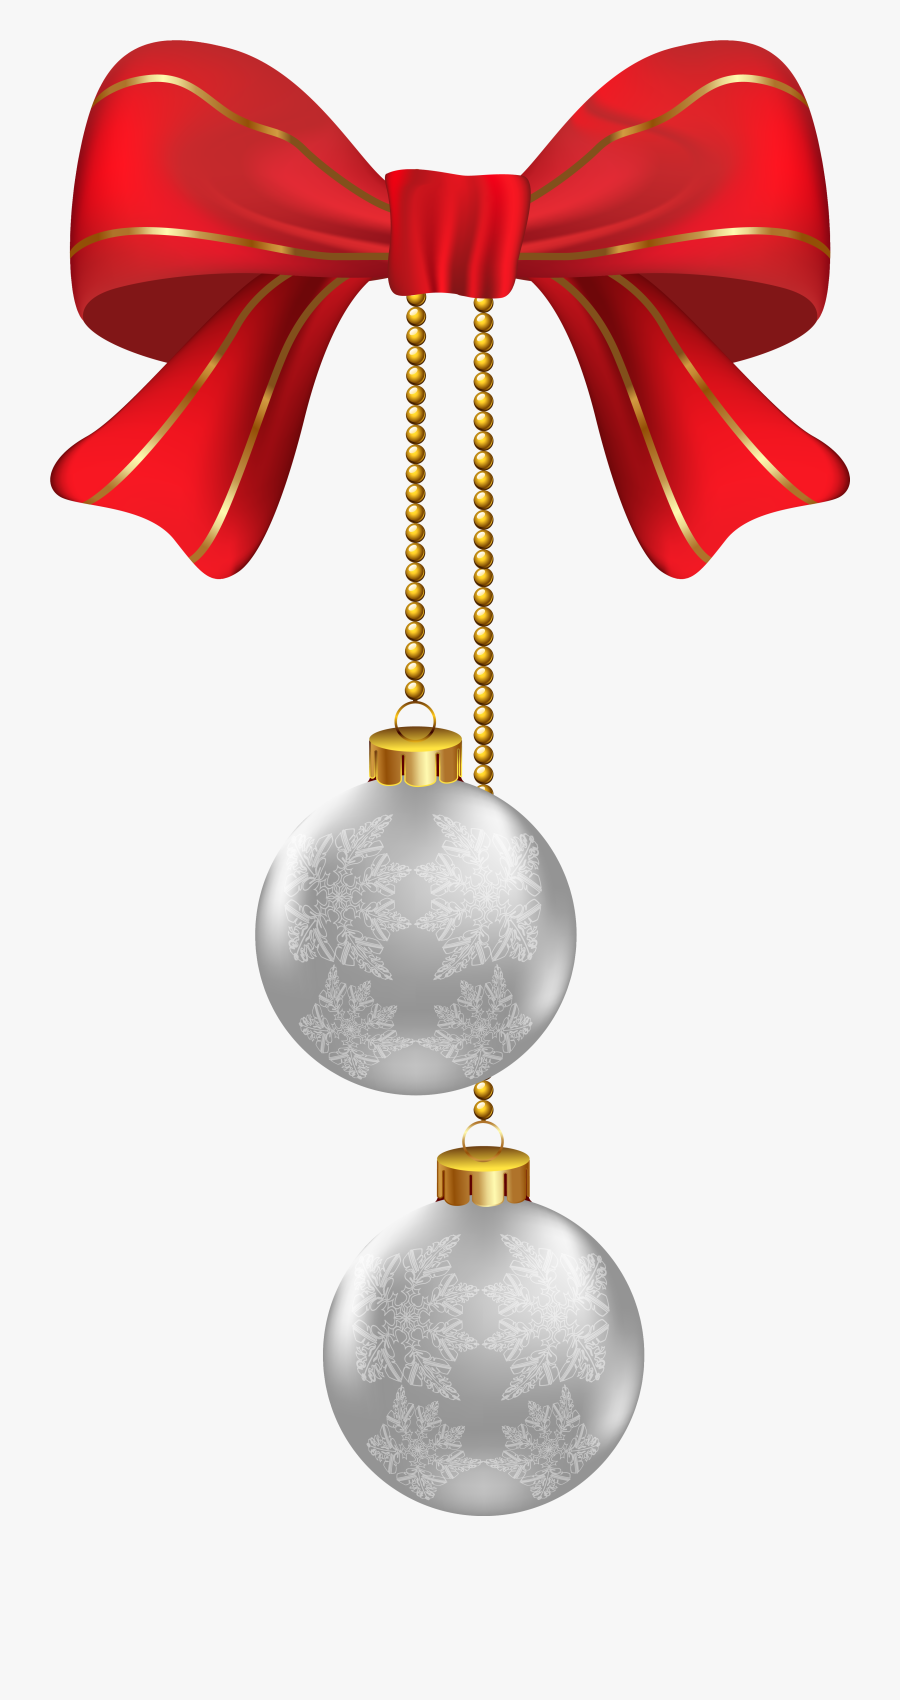 Ornaments Clipart Silver - Silver Christmas Hanging Decorations, Transparent Clipart